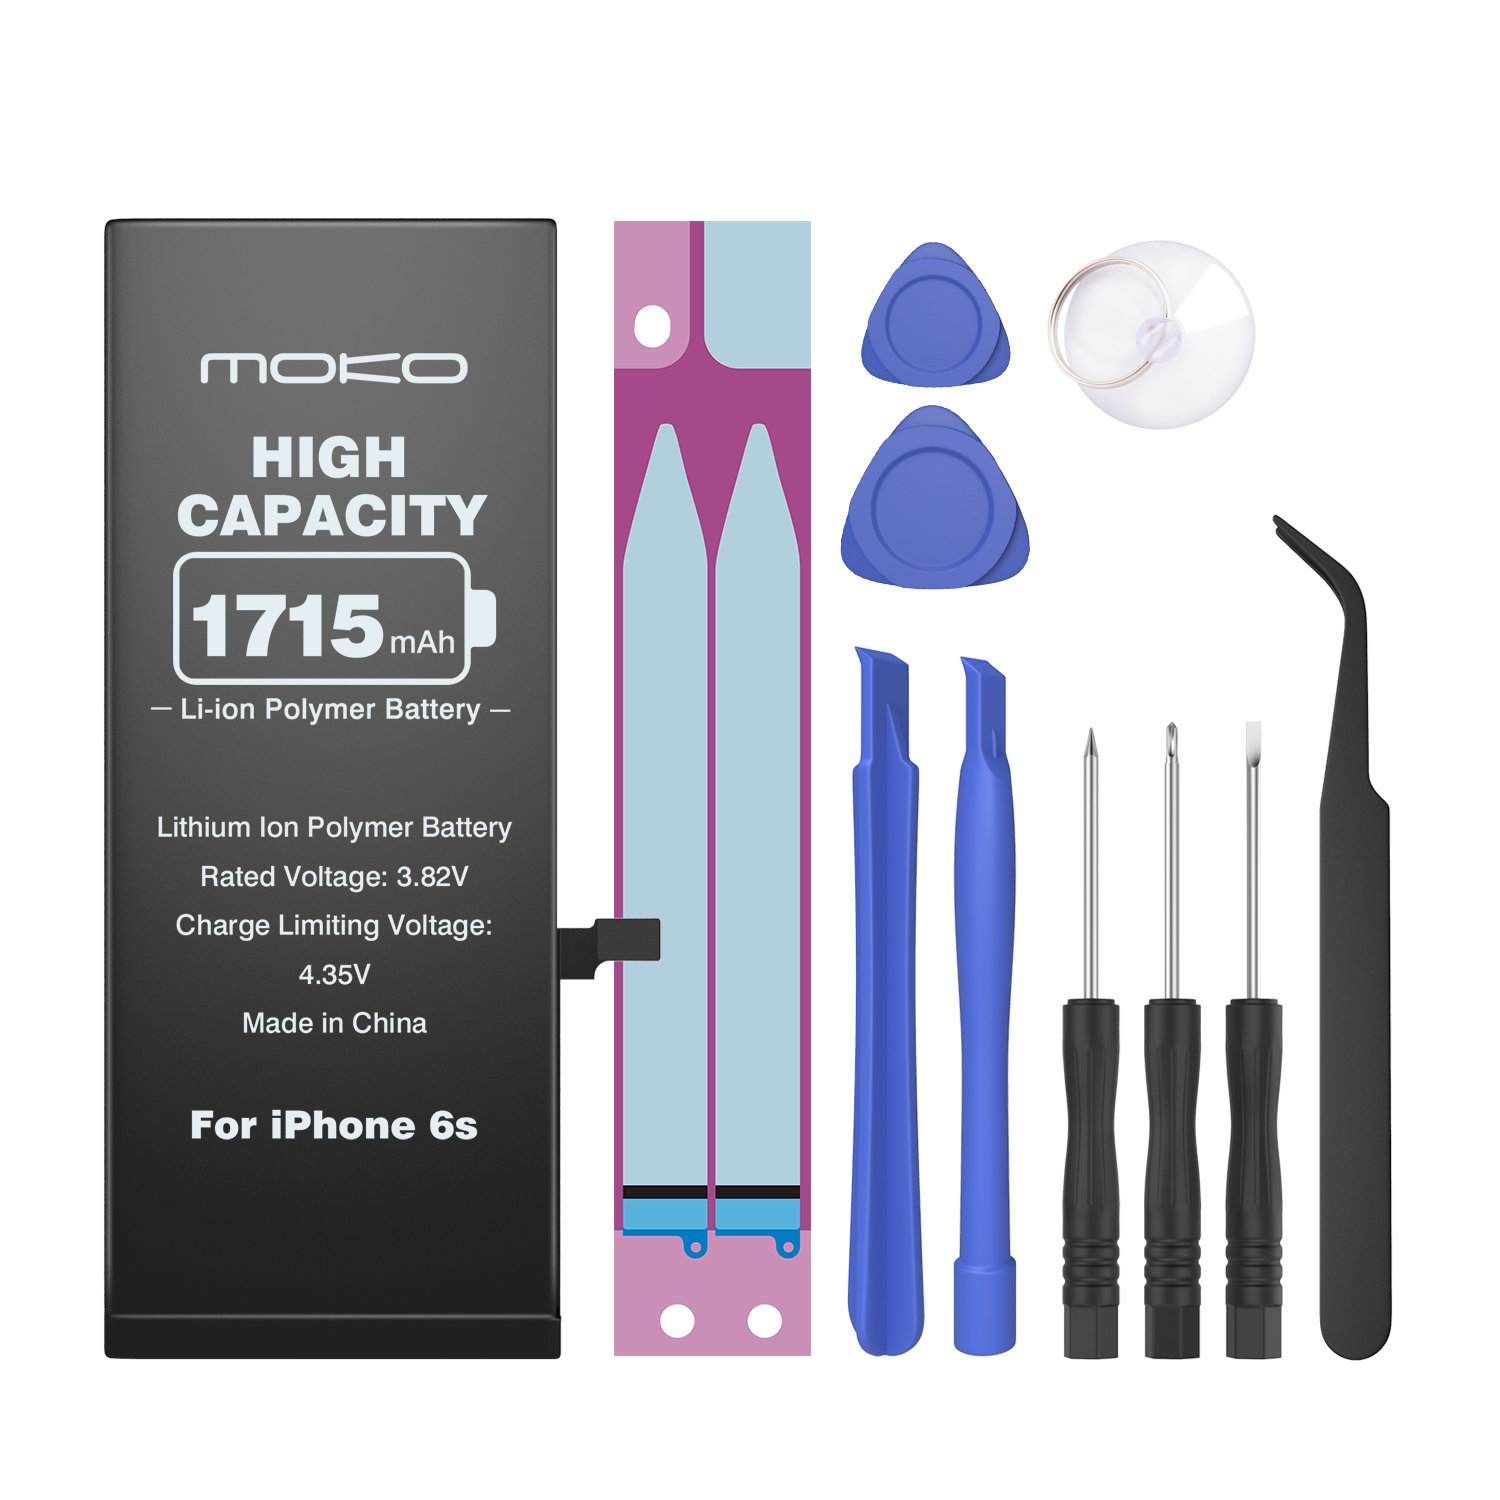 Moko Battery for iPhone 6S Replacement, 3.82V 1715mAh Brand New 0-Cycle Li-ion Battery Repair Kit with Tools and Instructions, for iPhone 6S [A1633/A1688] 4.7 inch - Black